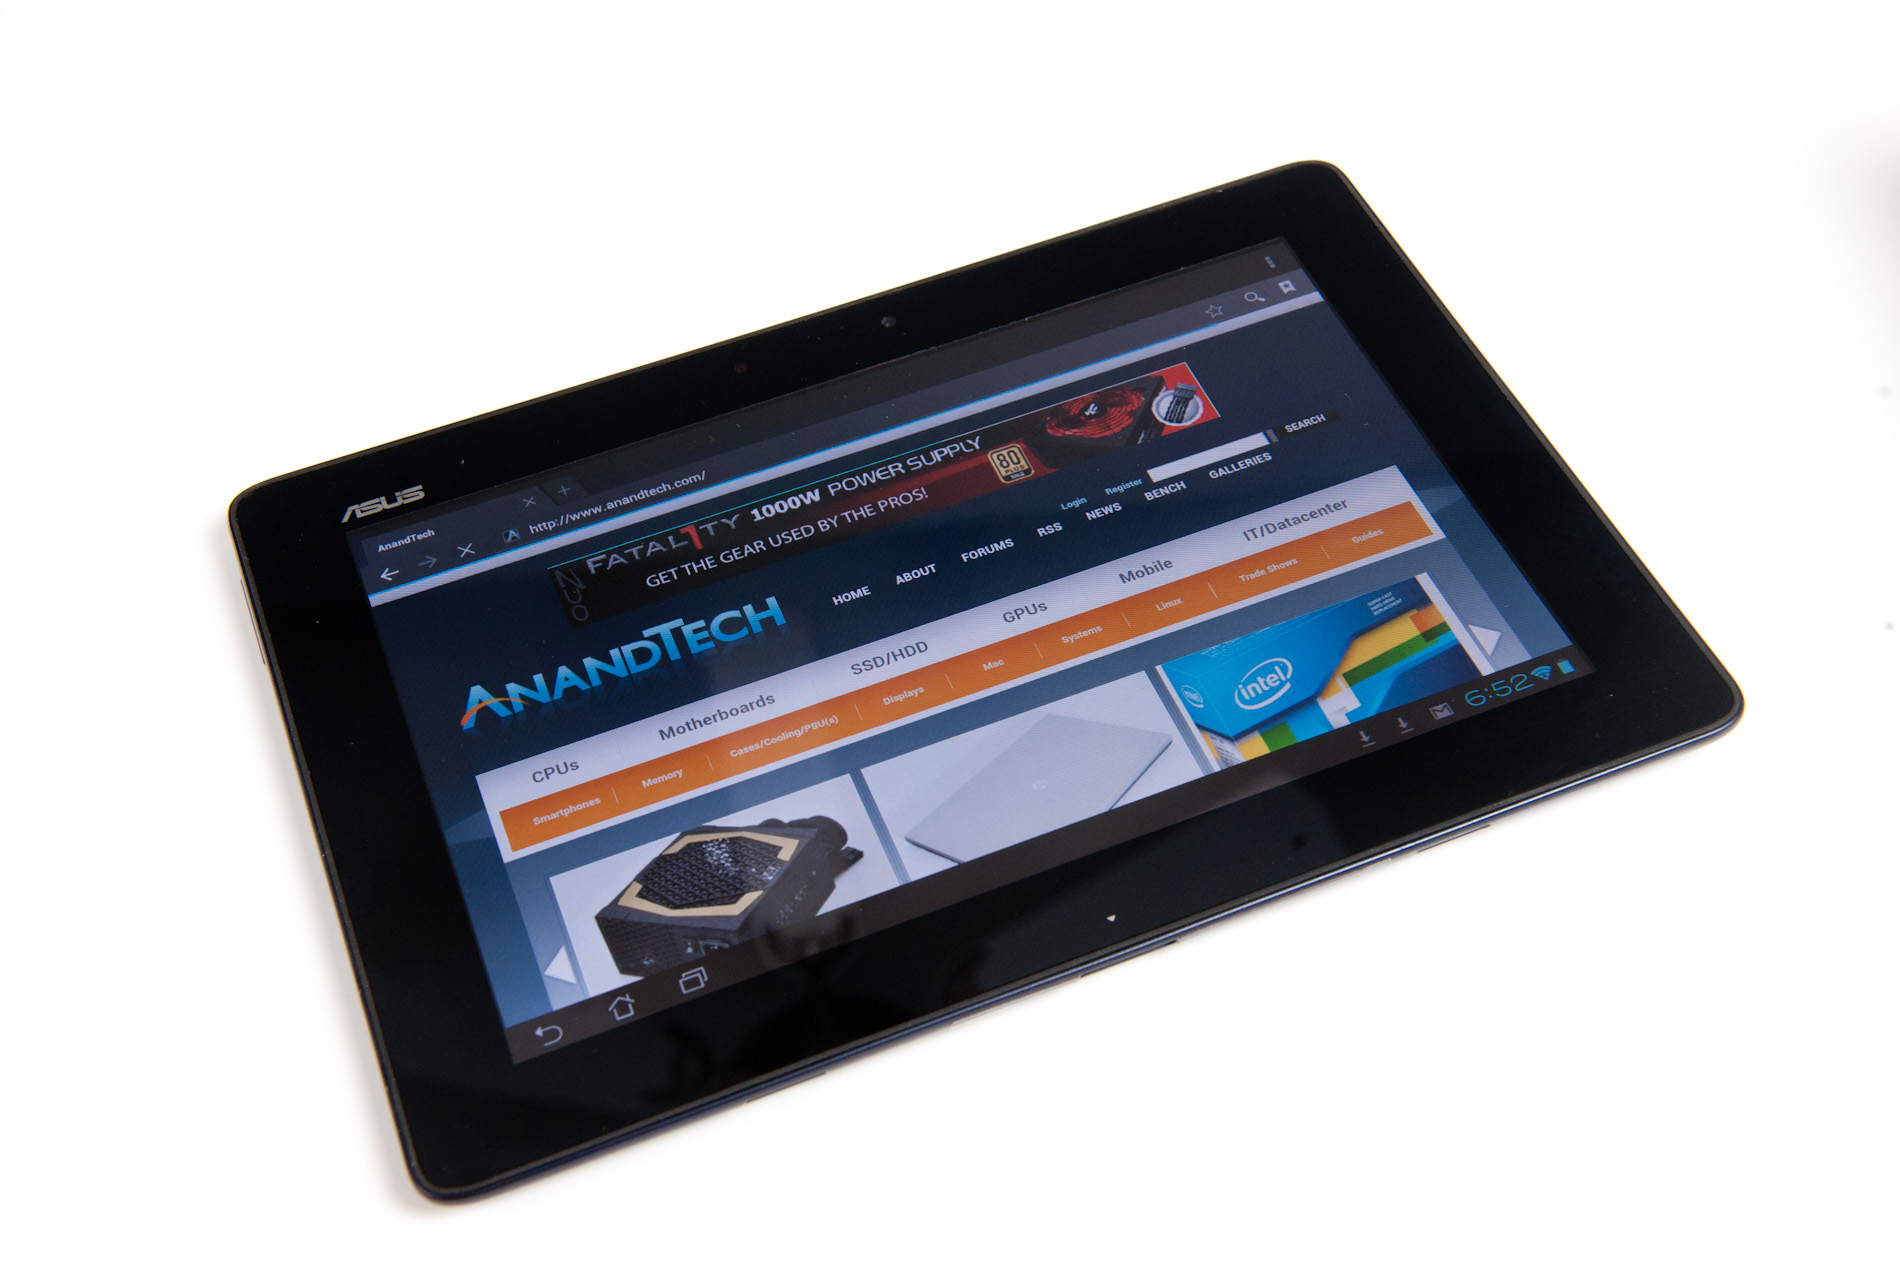 The Display - ASUS Transformer Pad 300 (TF300T) Review